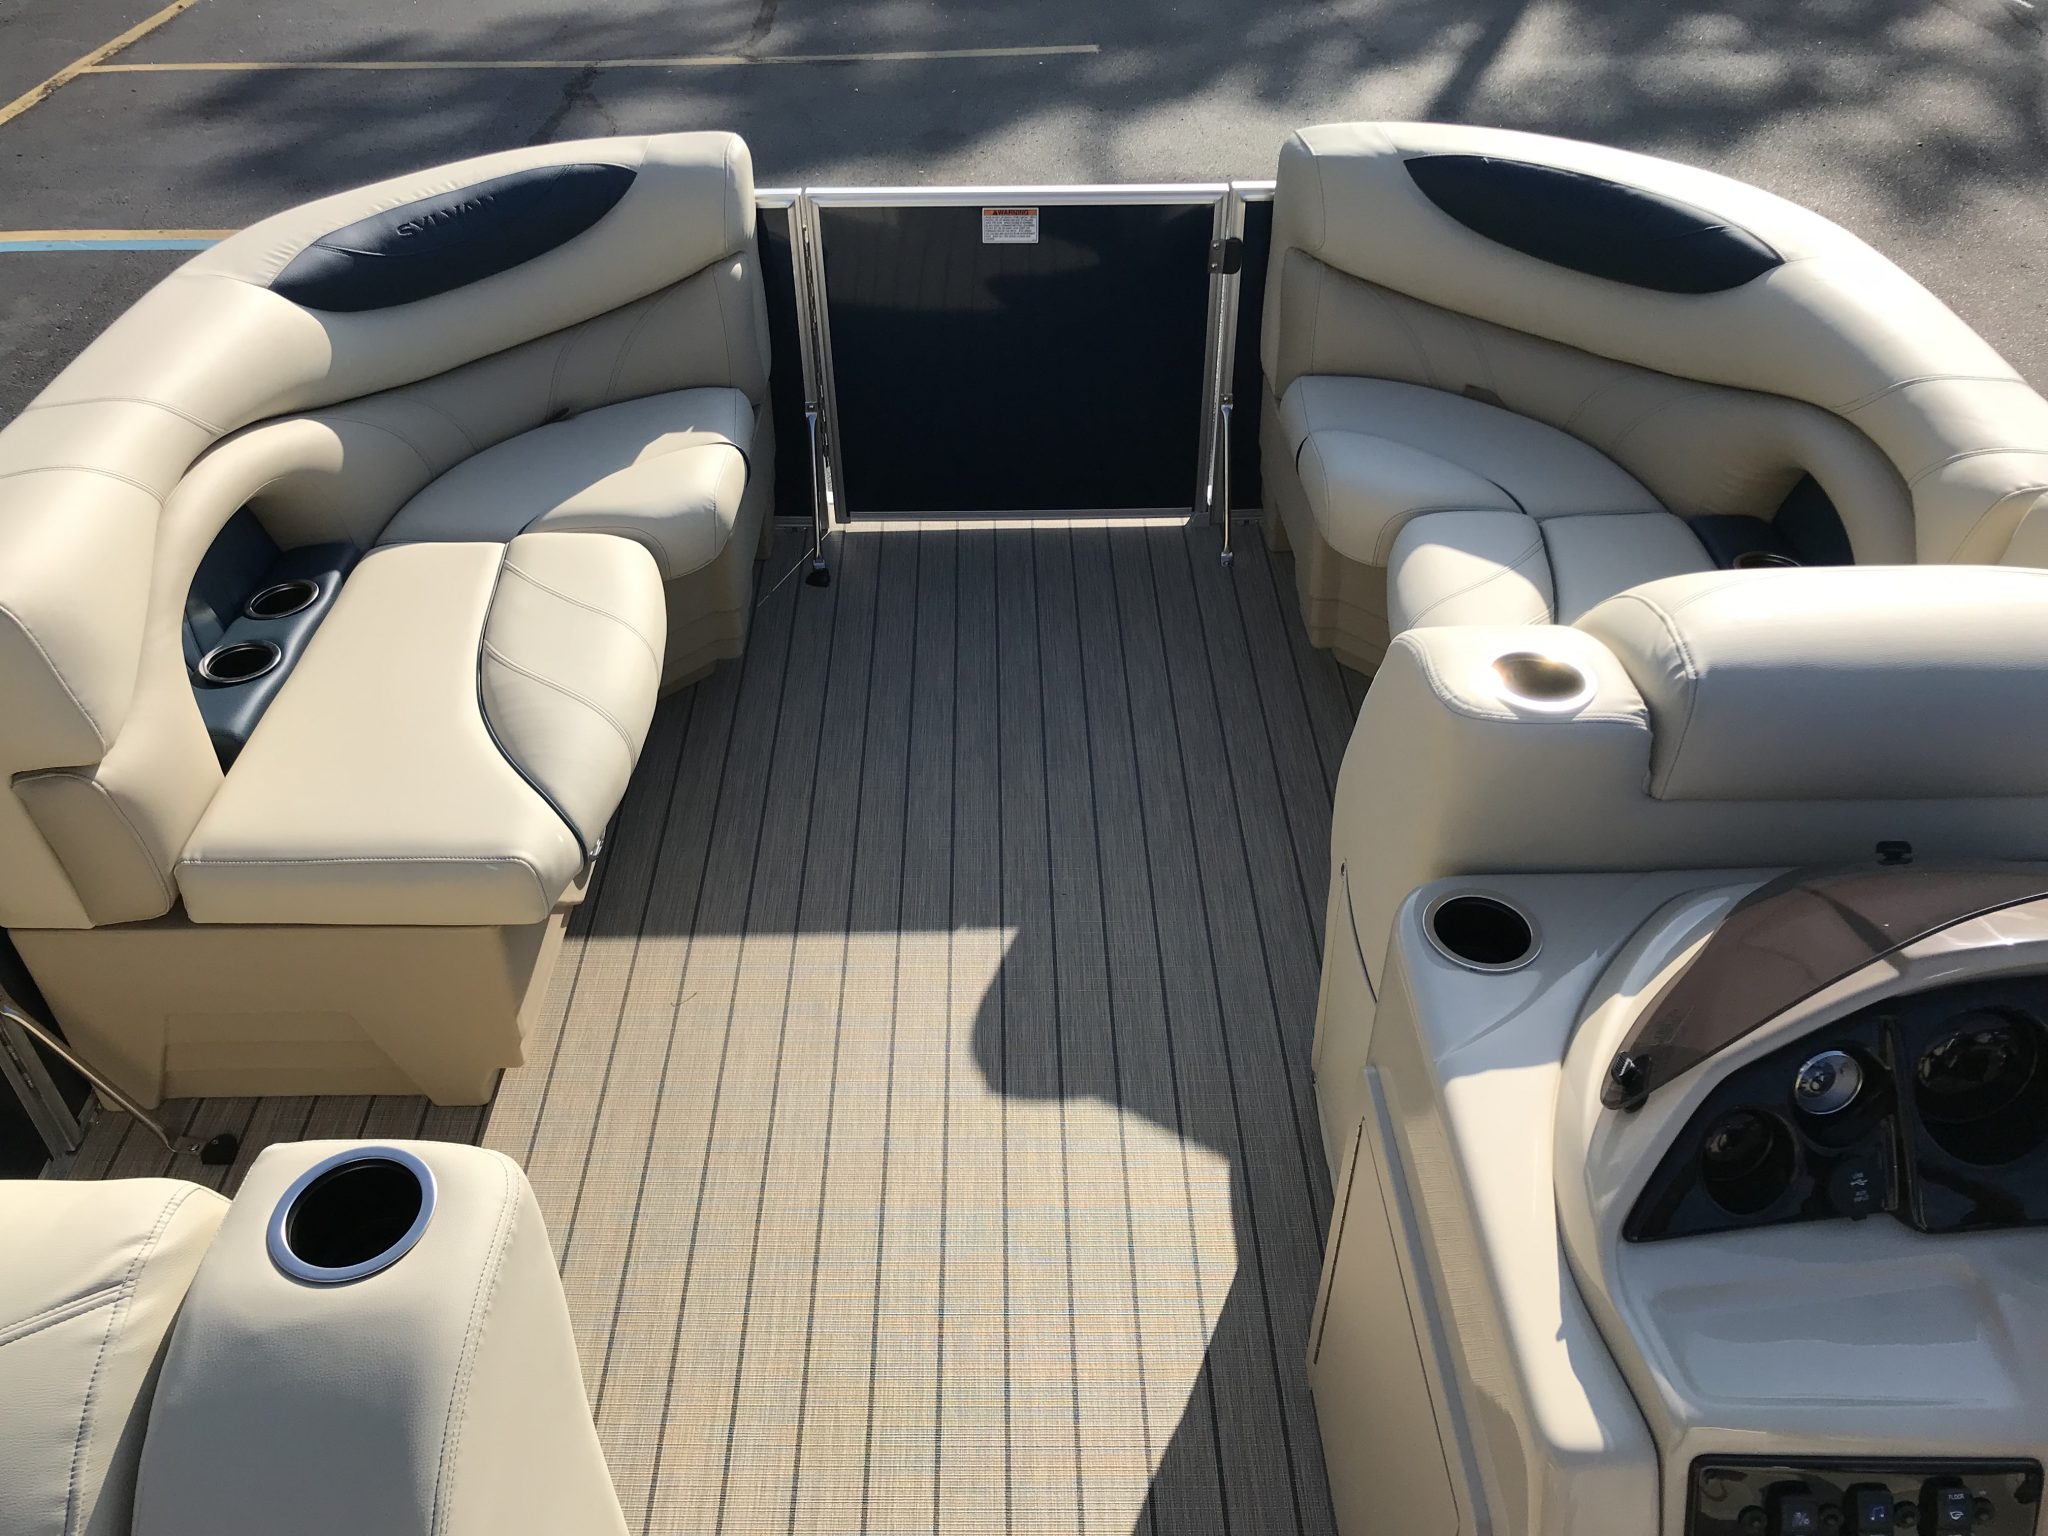 Sylvan 8520 Cruise-n-Fish Interior Bow Seating